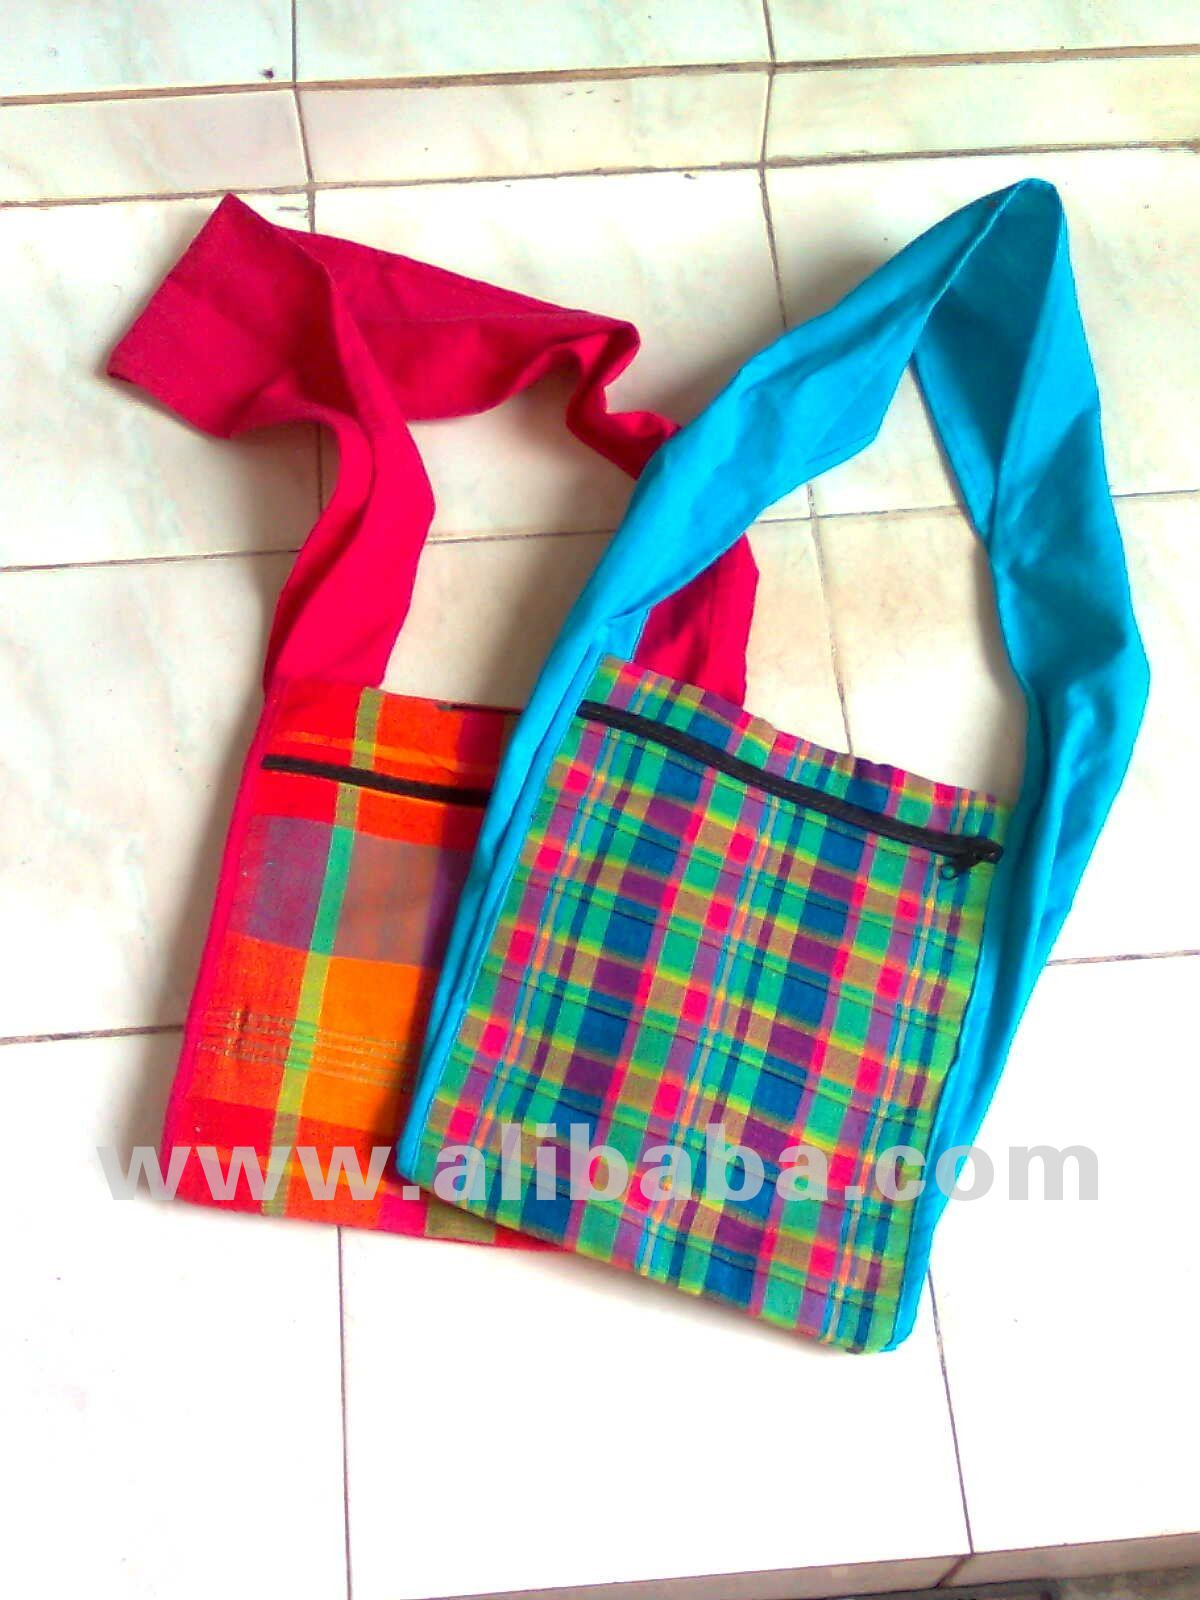 Handloom Long Handle Slim Bag - Large